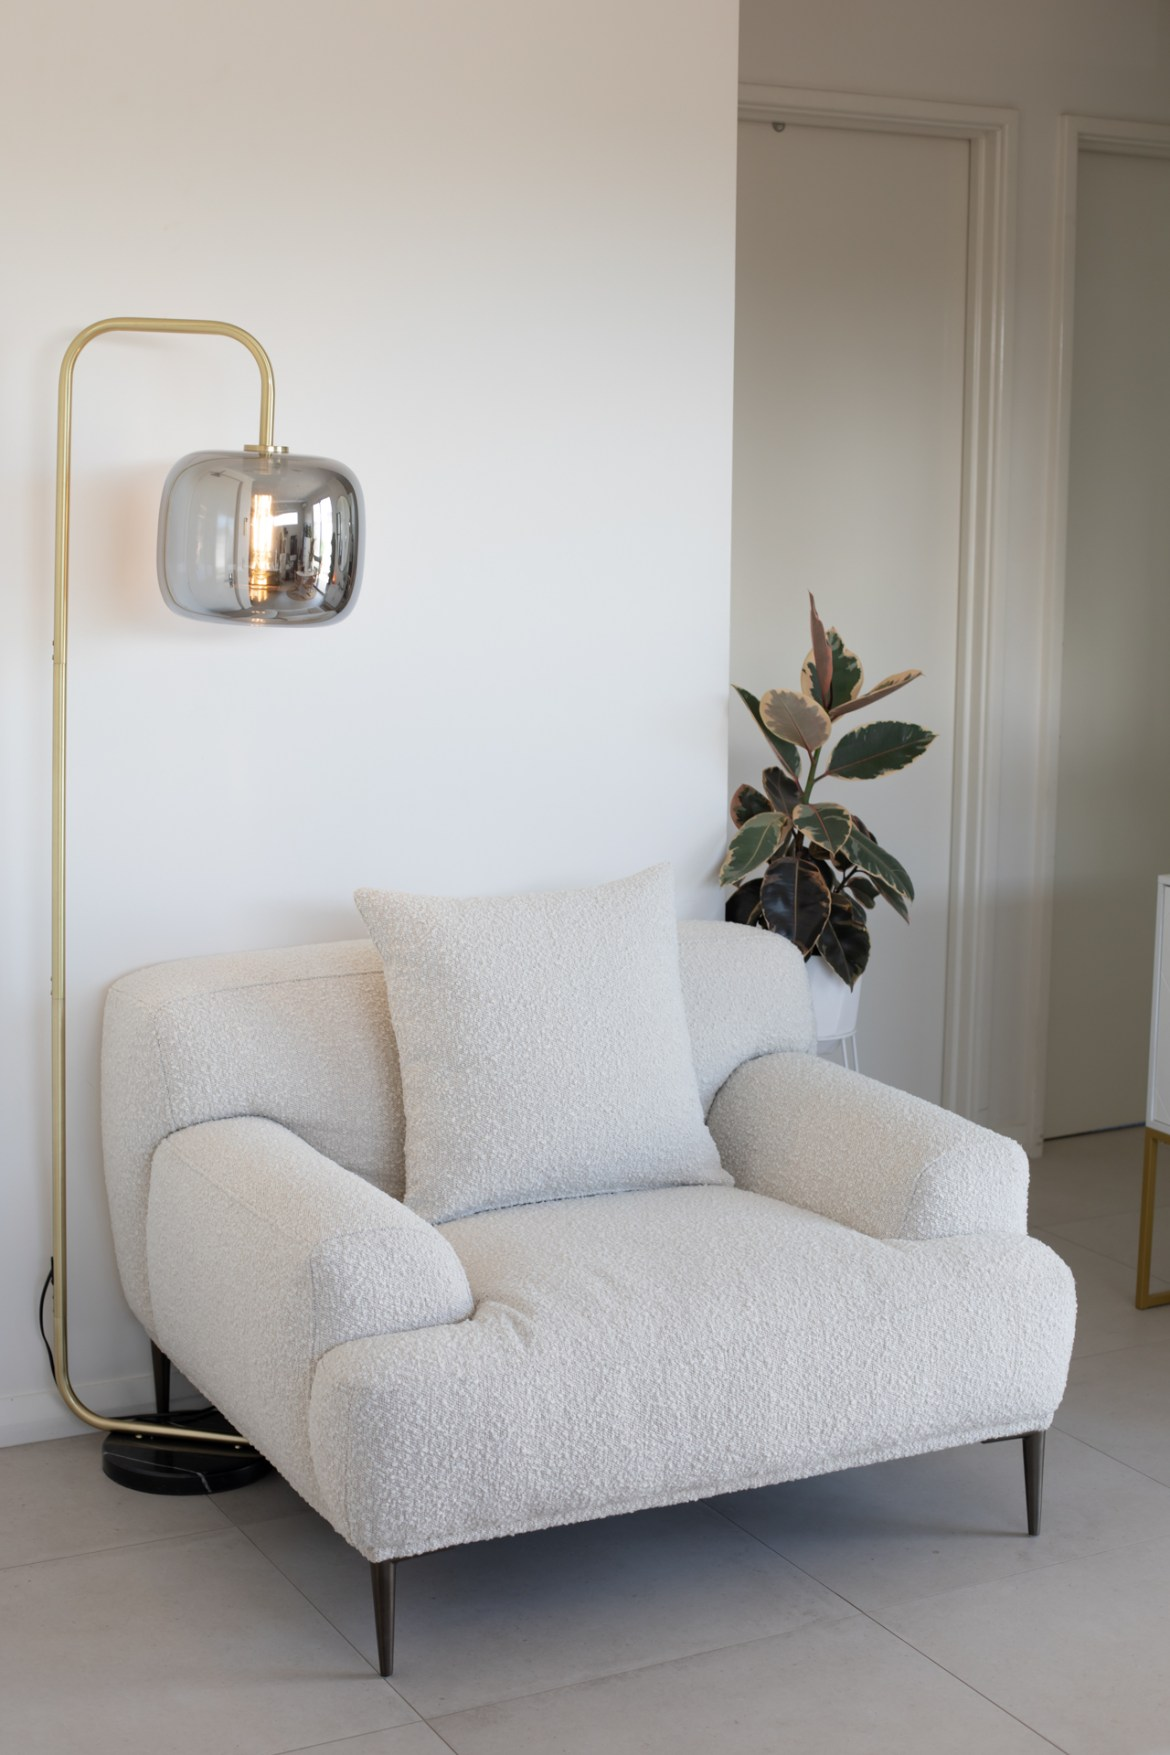 Boucle Seta armchair by Brosa styled at home with brass floor lamp